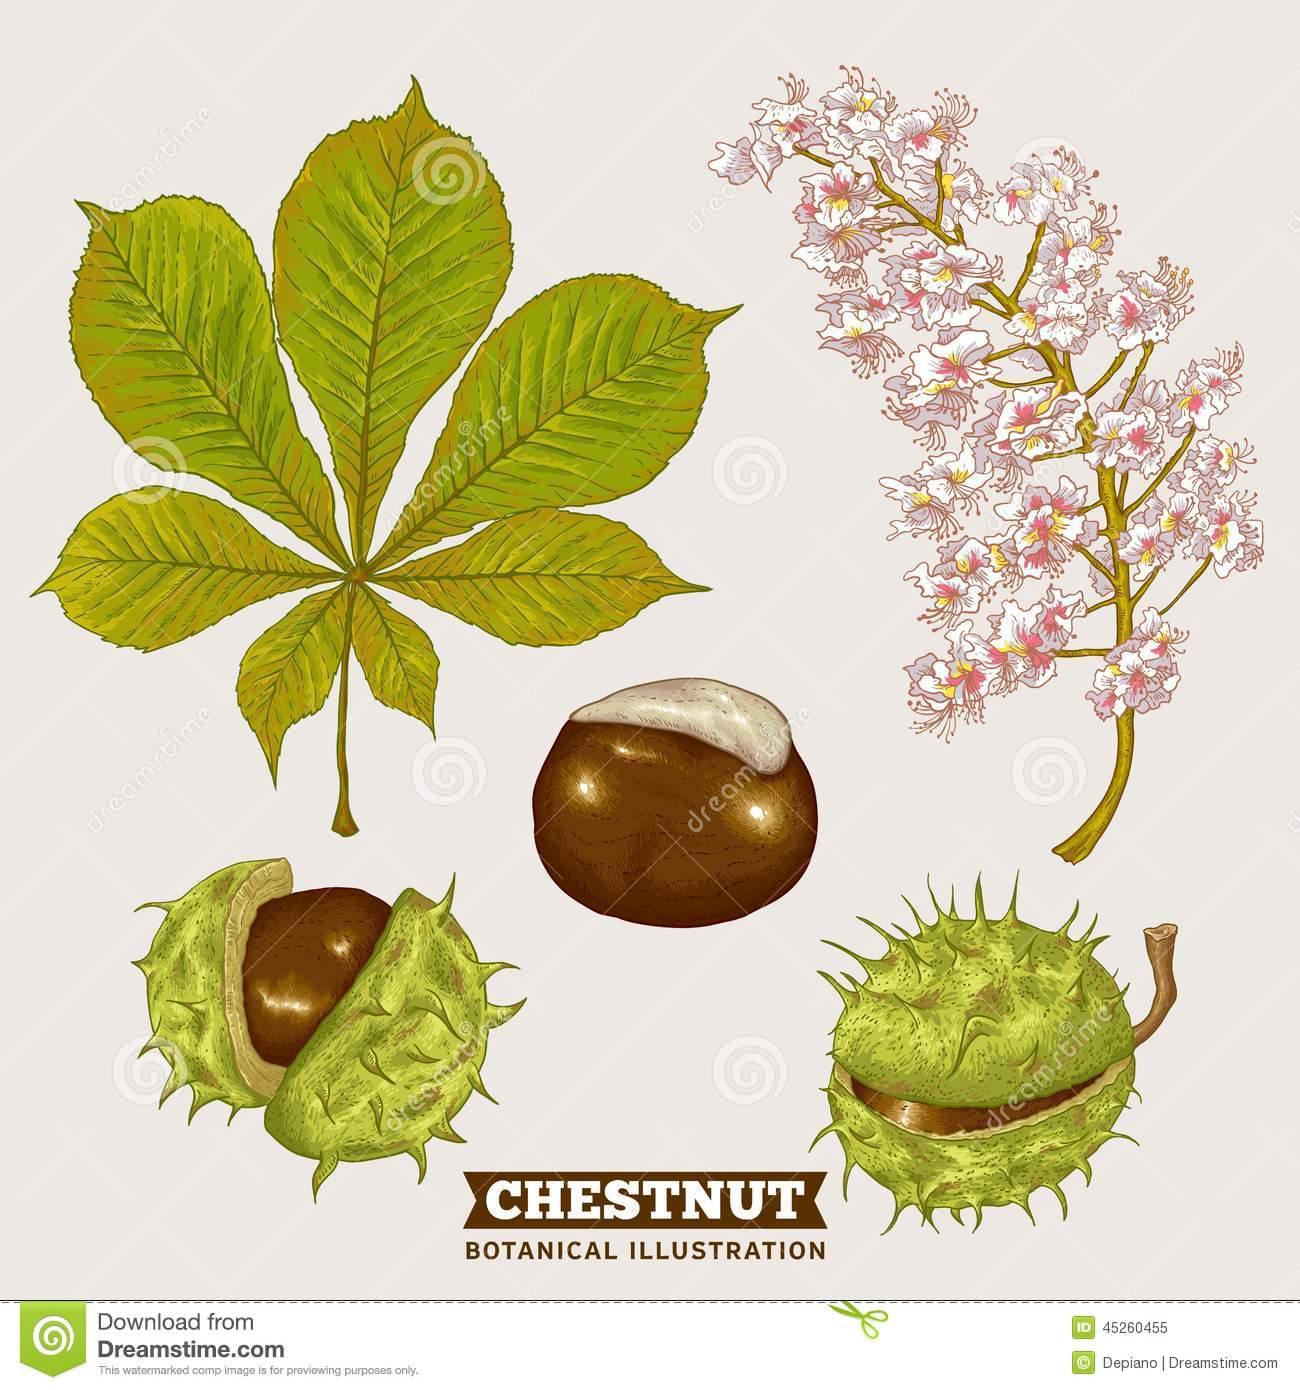 Blossom Chestnut Botanical Vector Illustration Stock Vector.